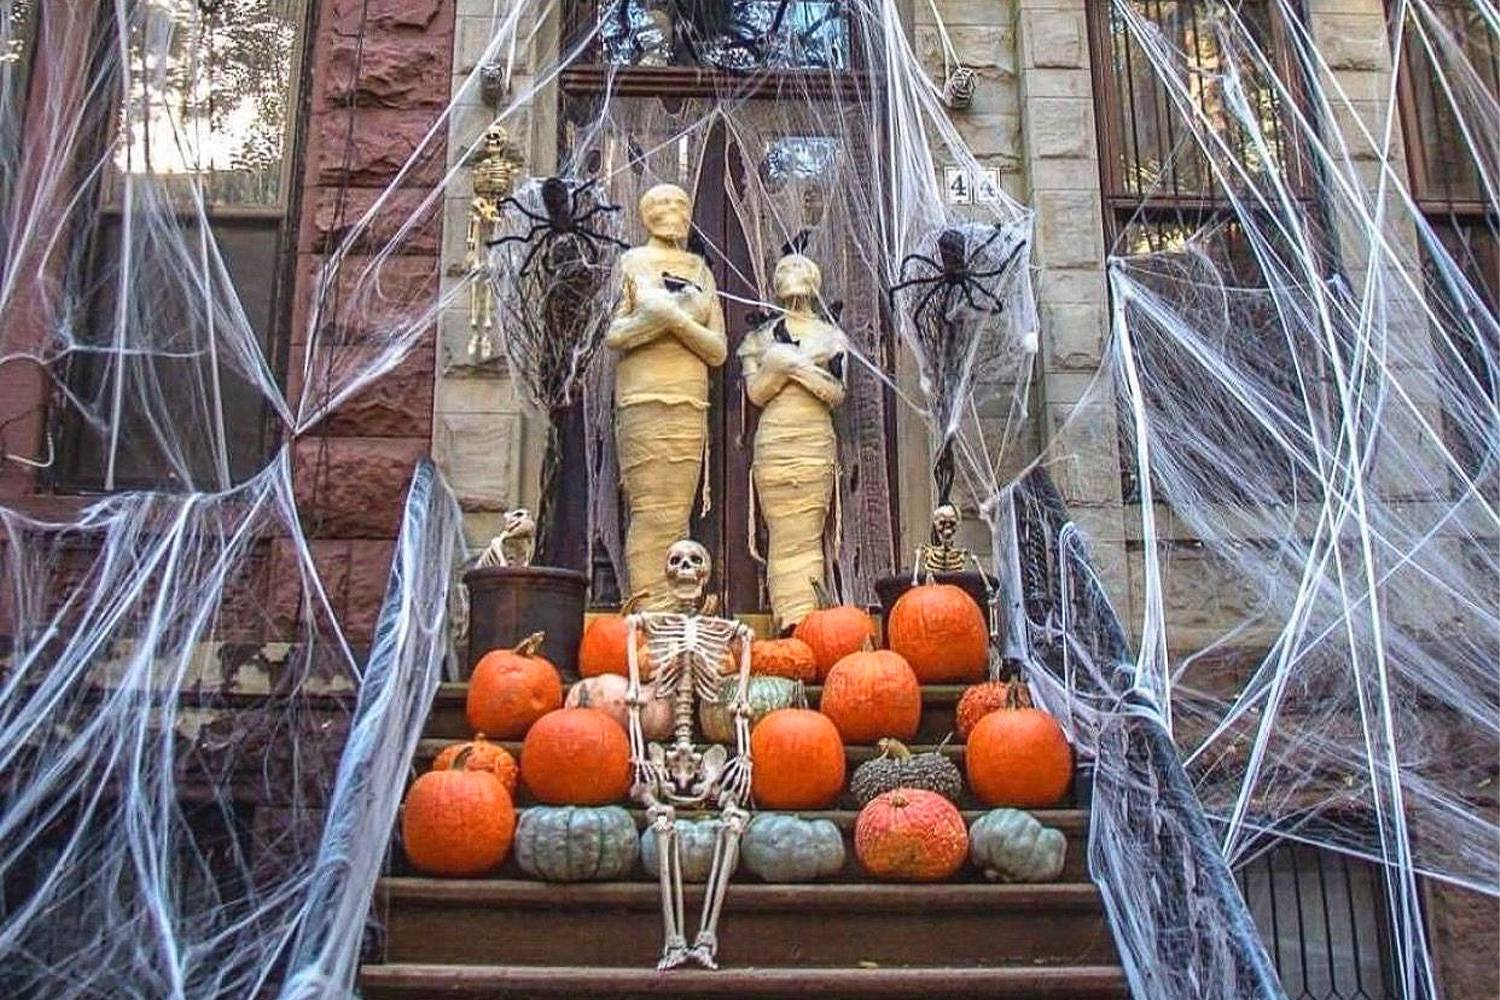 A haunted Manhattan stoop featuring Halloween-themed ghouls, skeletons, gourds, and spider webs.